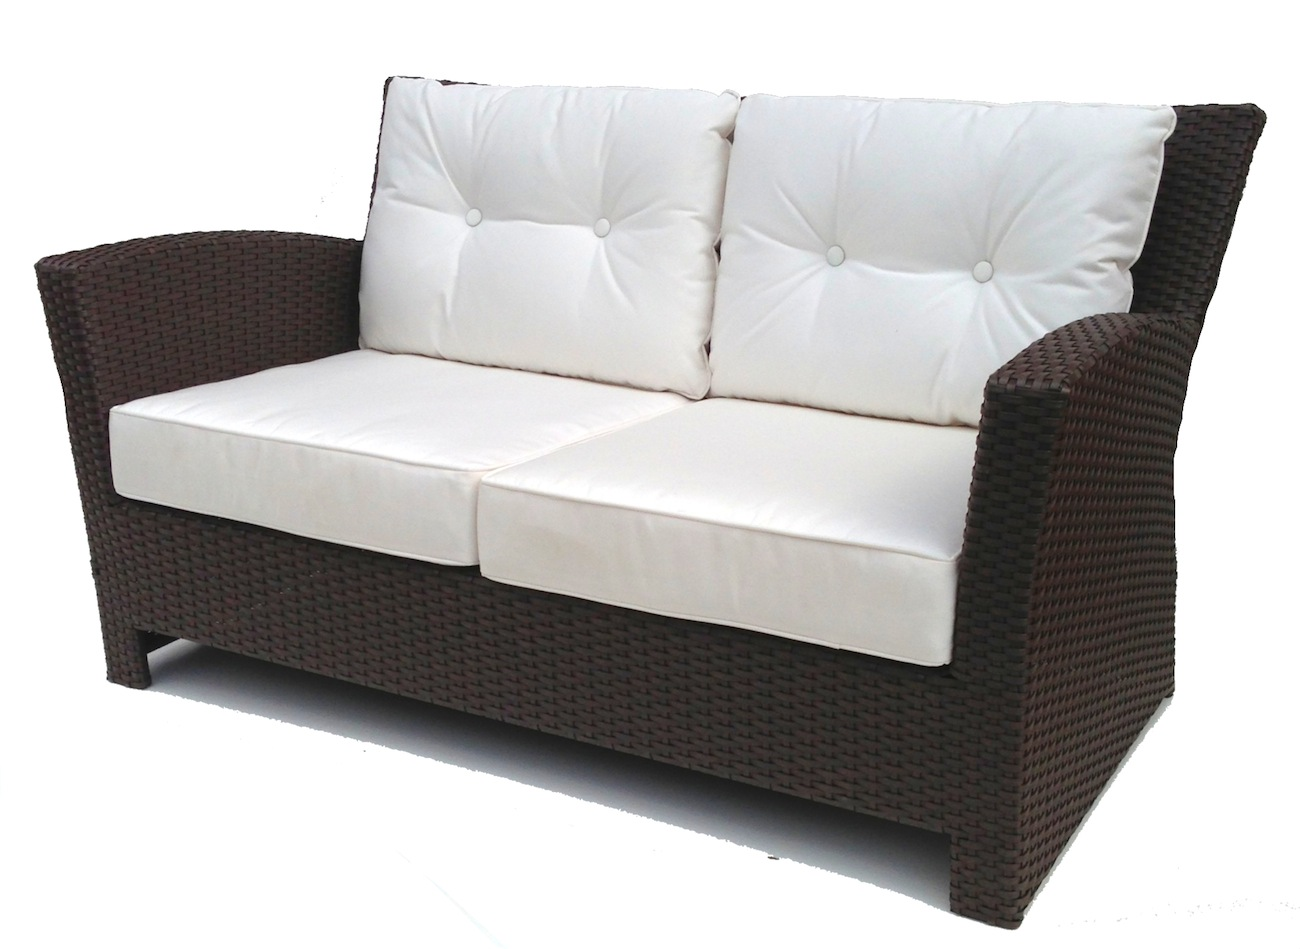 spring haven brown all weather wicker patio sofa billig chaiselong til salg outdoor hampton bay